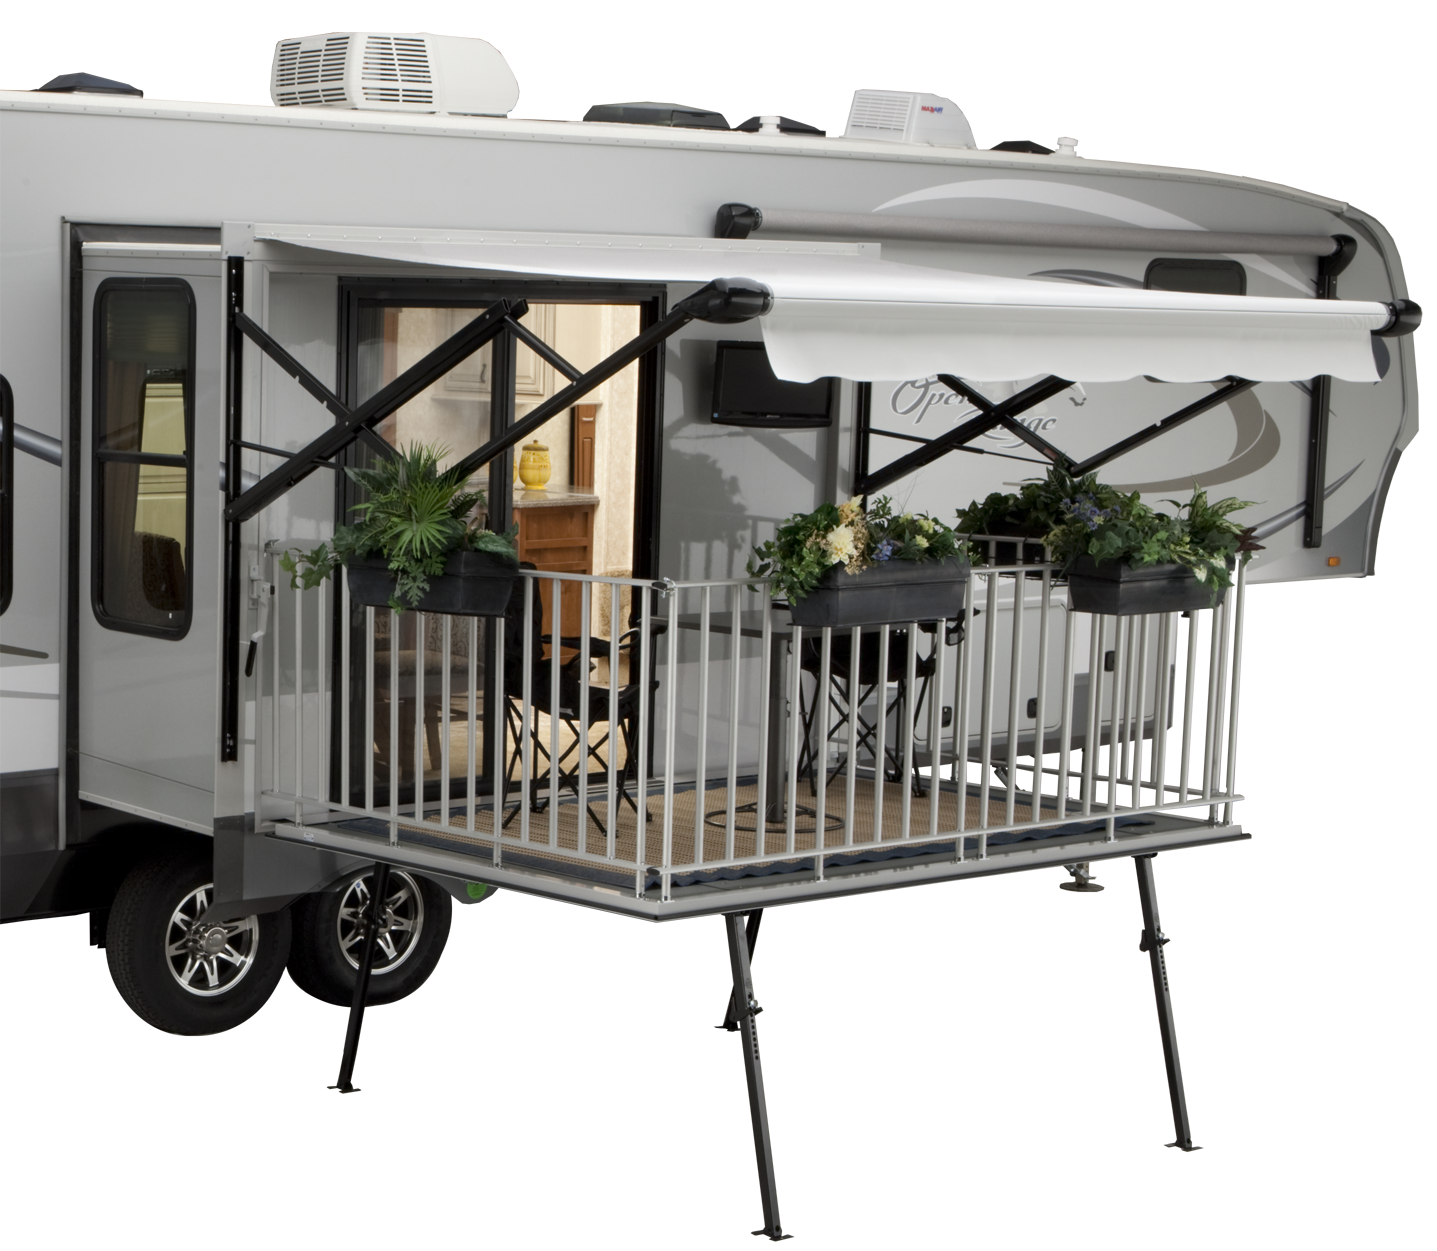 Toy Hauler With Outdoor Kitchen: Open Range Toy Hauler With Deck Patio